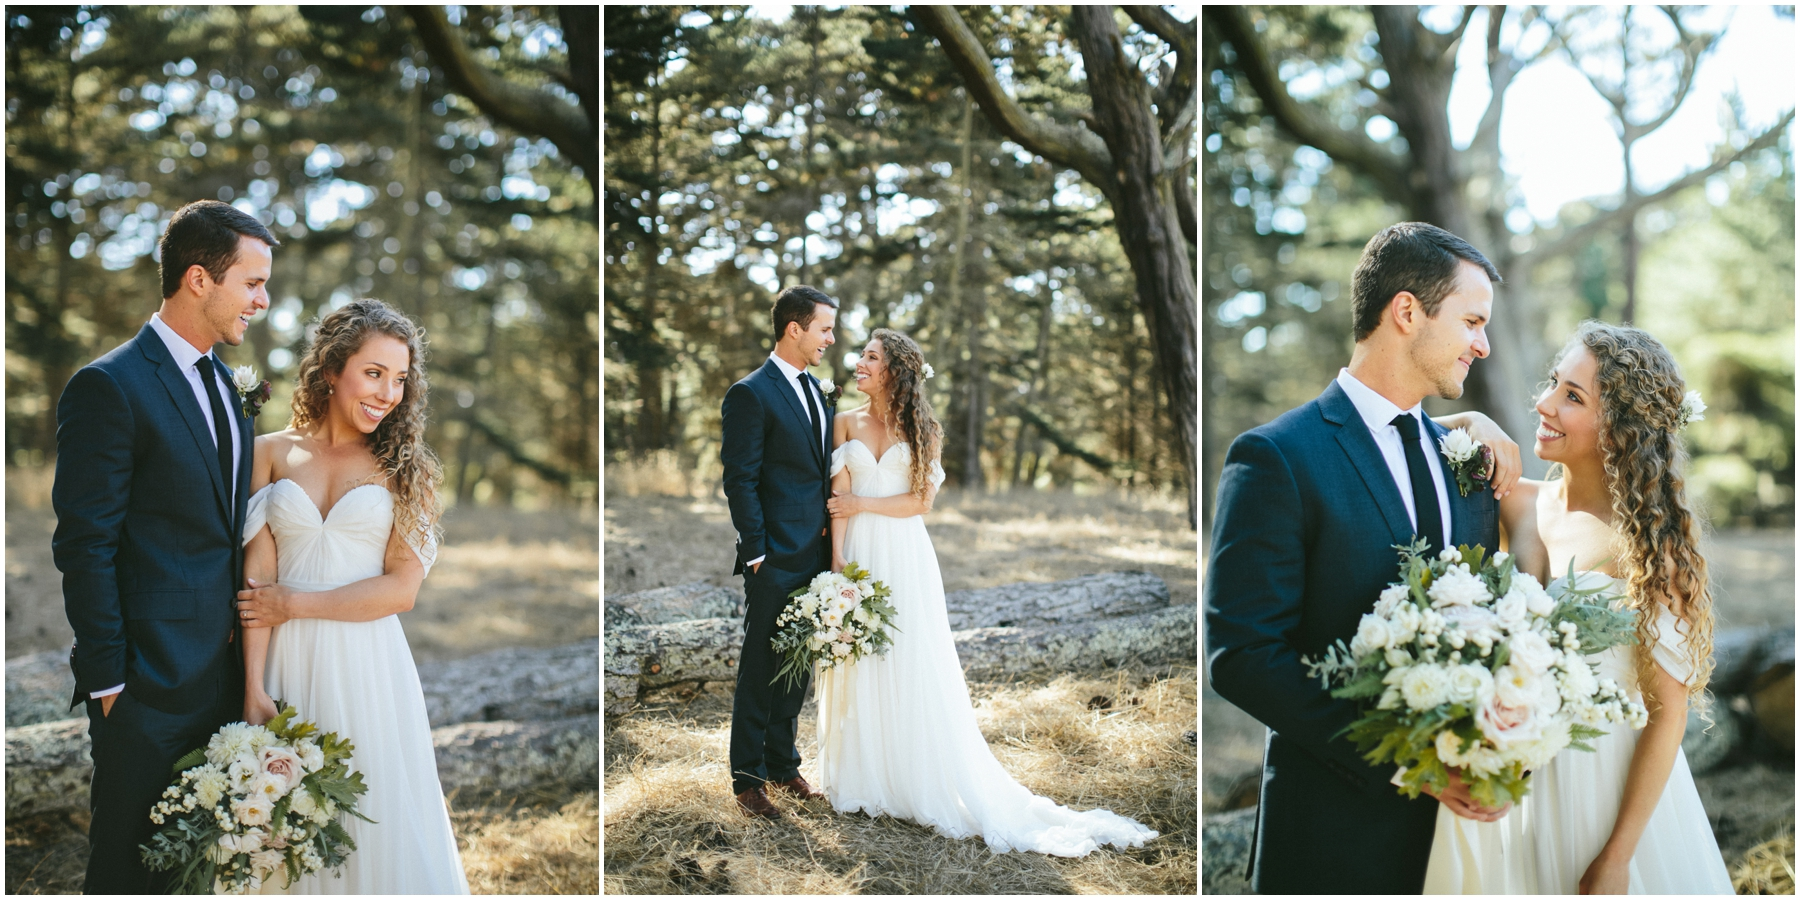 Emily+Paul-WEDDING_KellyBoitanoPhotography_0054